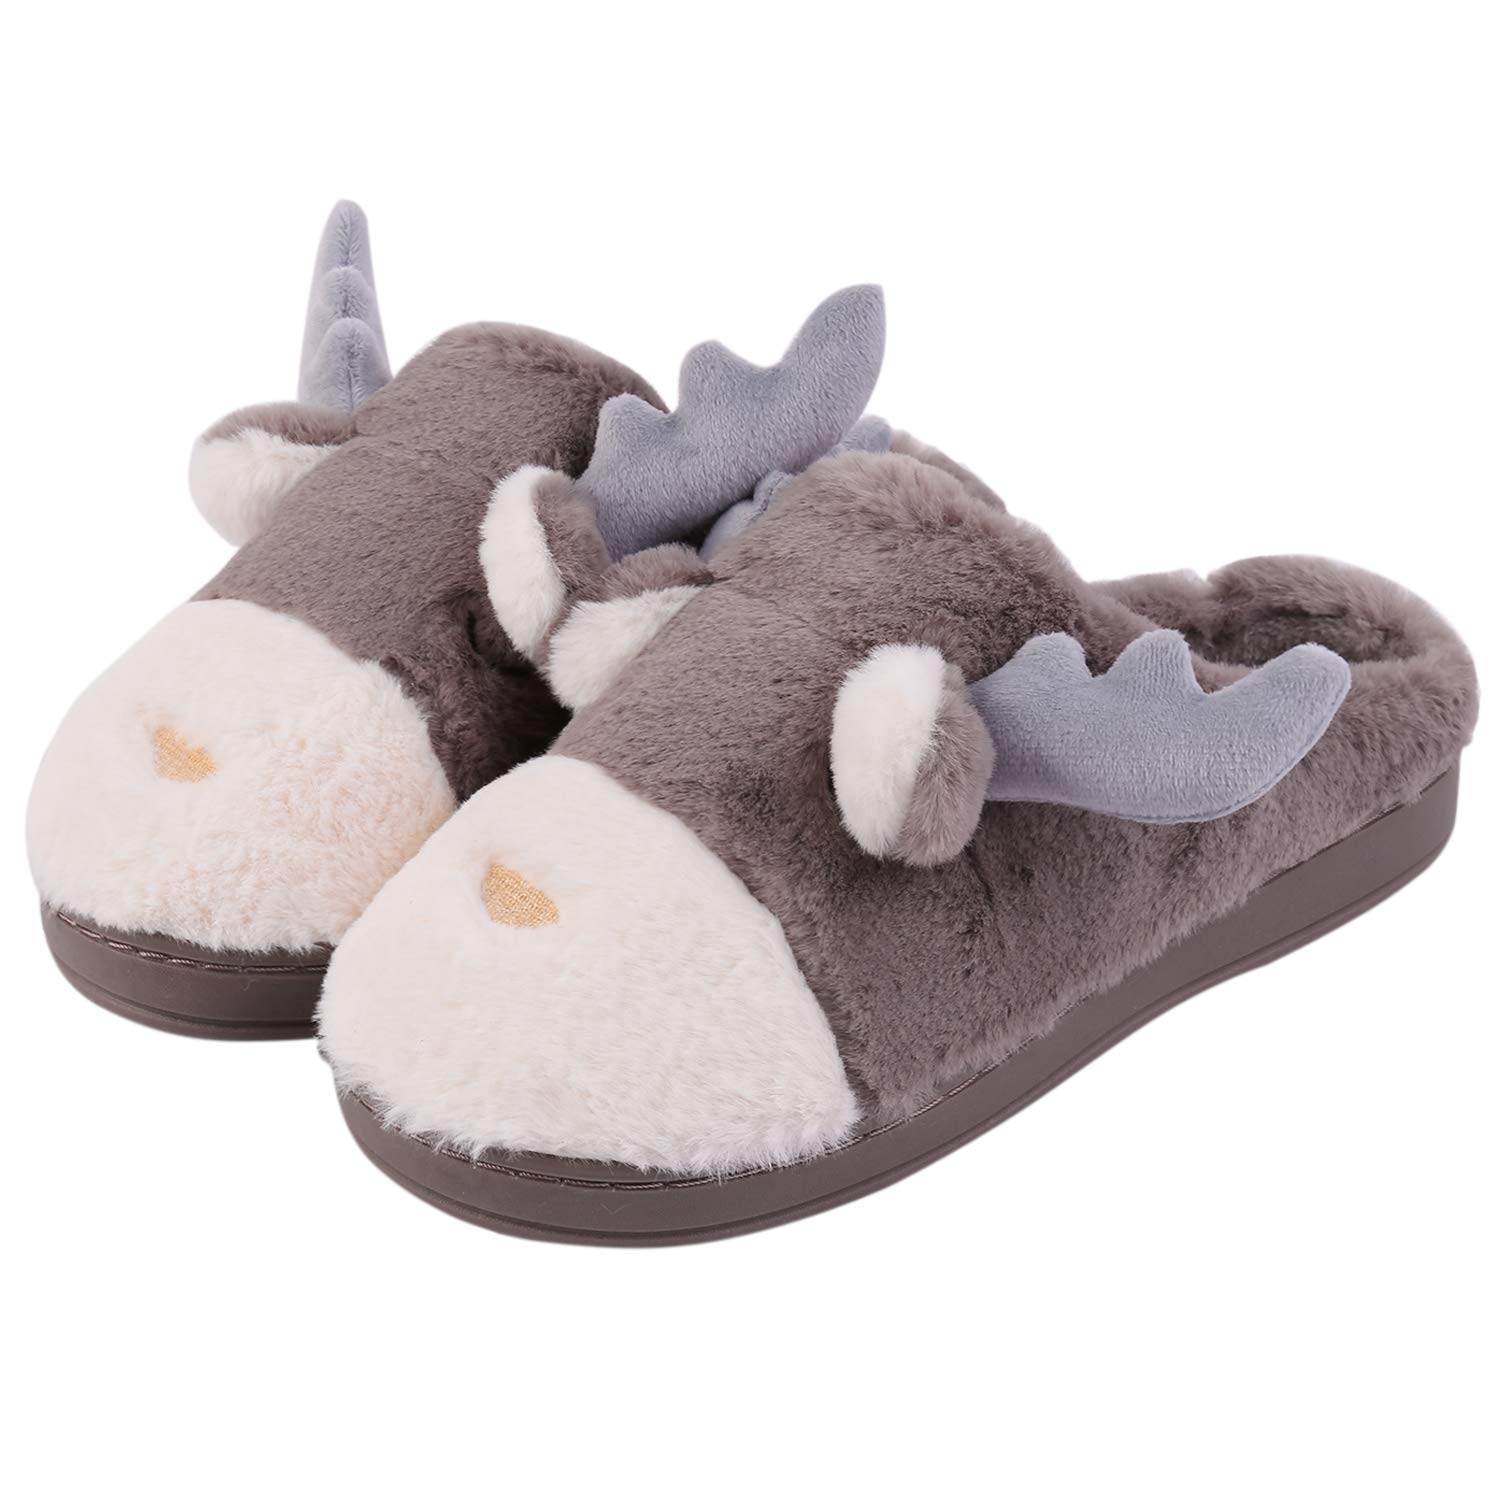 Hawiton Men/Women House Slipper Deer Fuzzy Plush Linning House Shoes Slip On Xmas Slippers by Hawiton